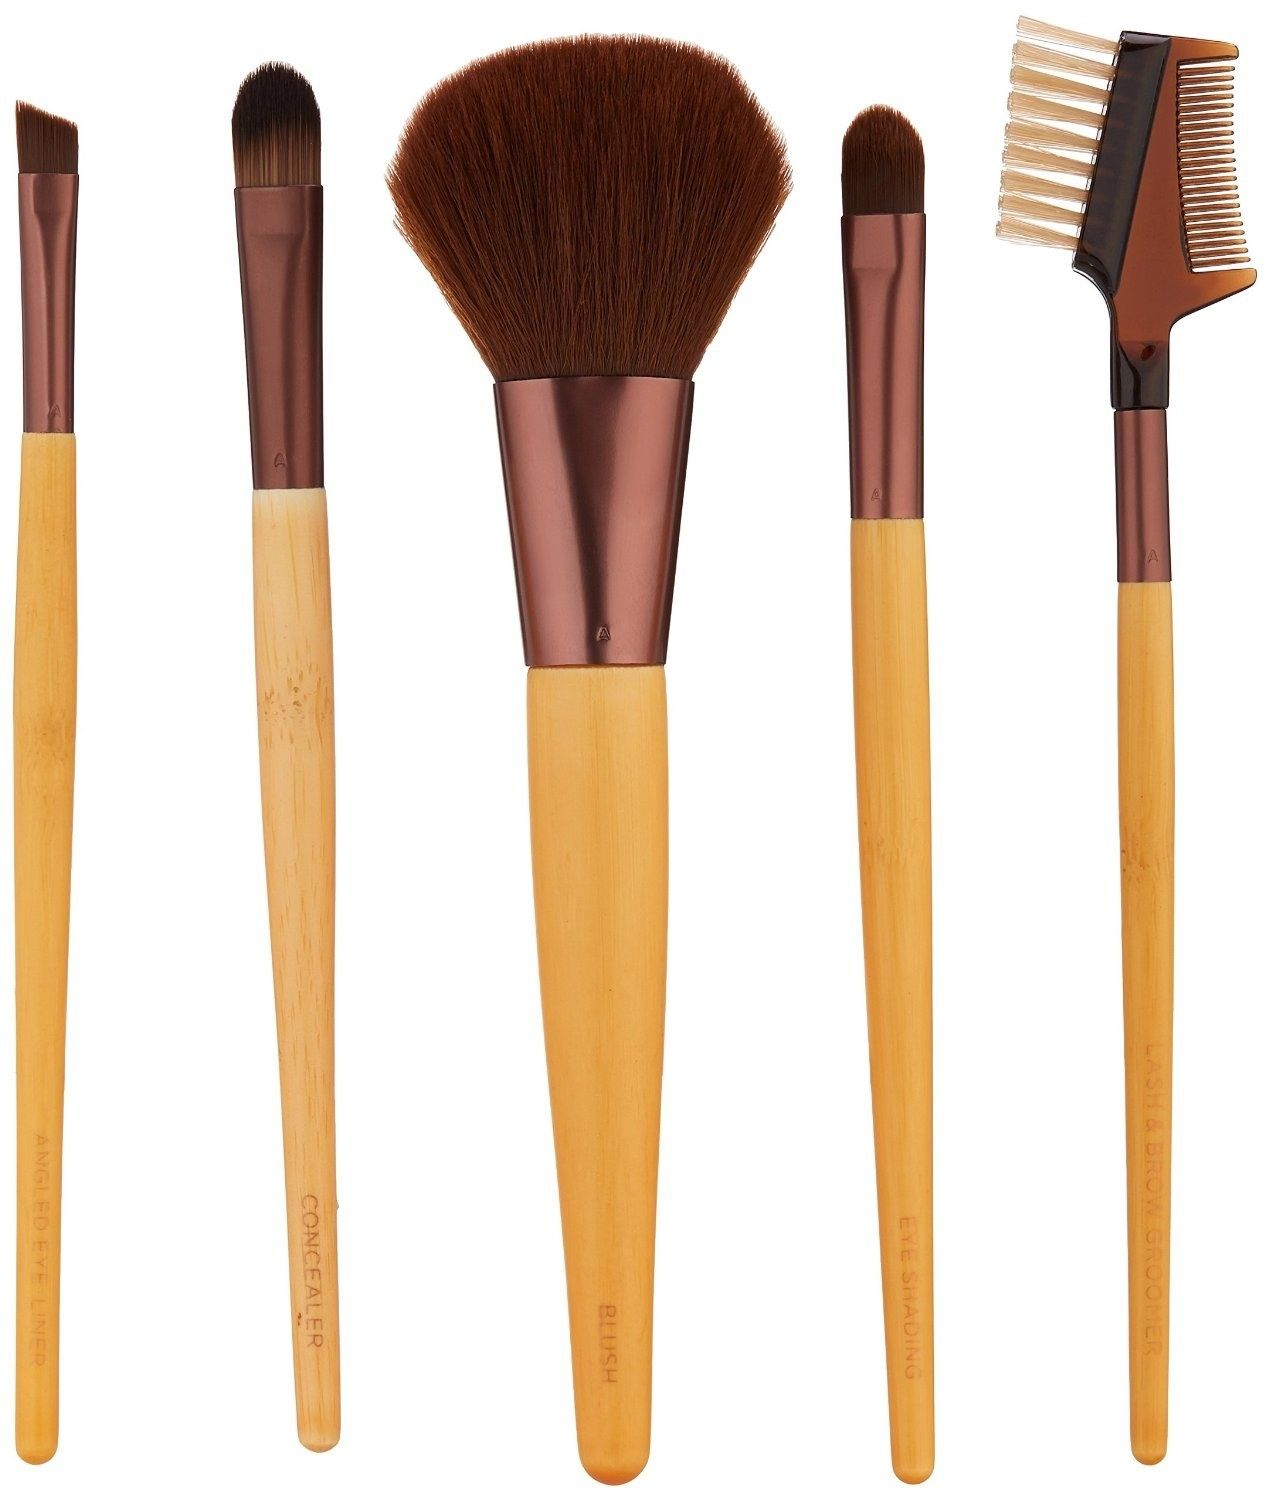 Makeup brushes from EcoTools that last for years. Best